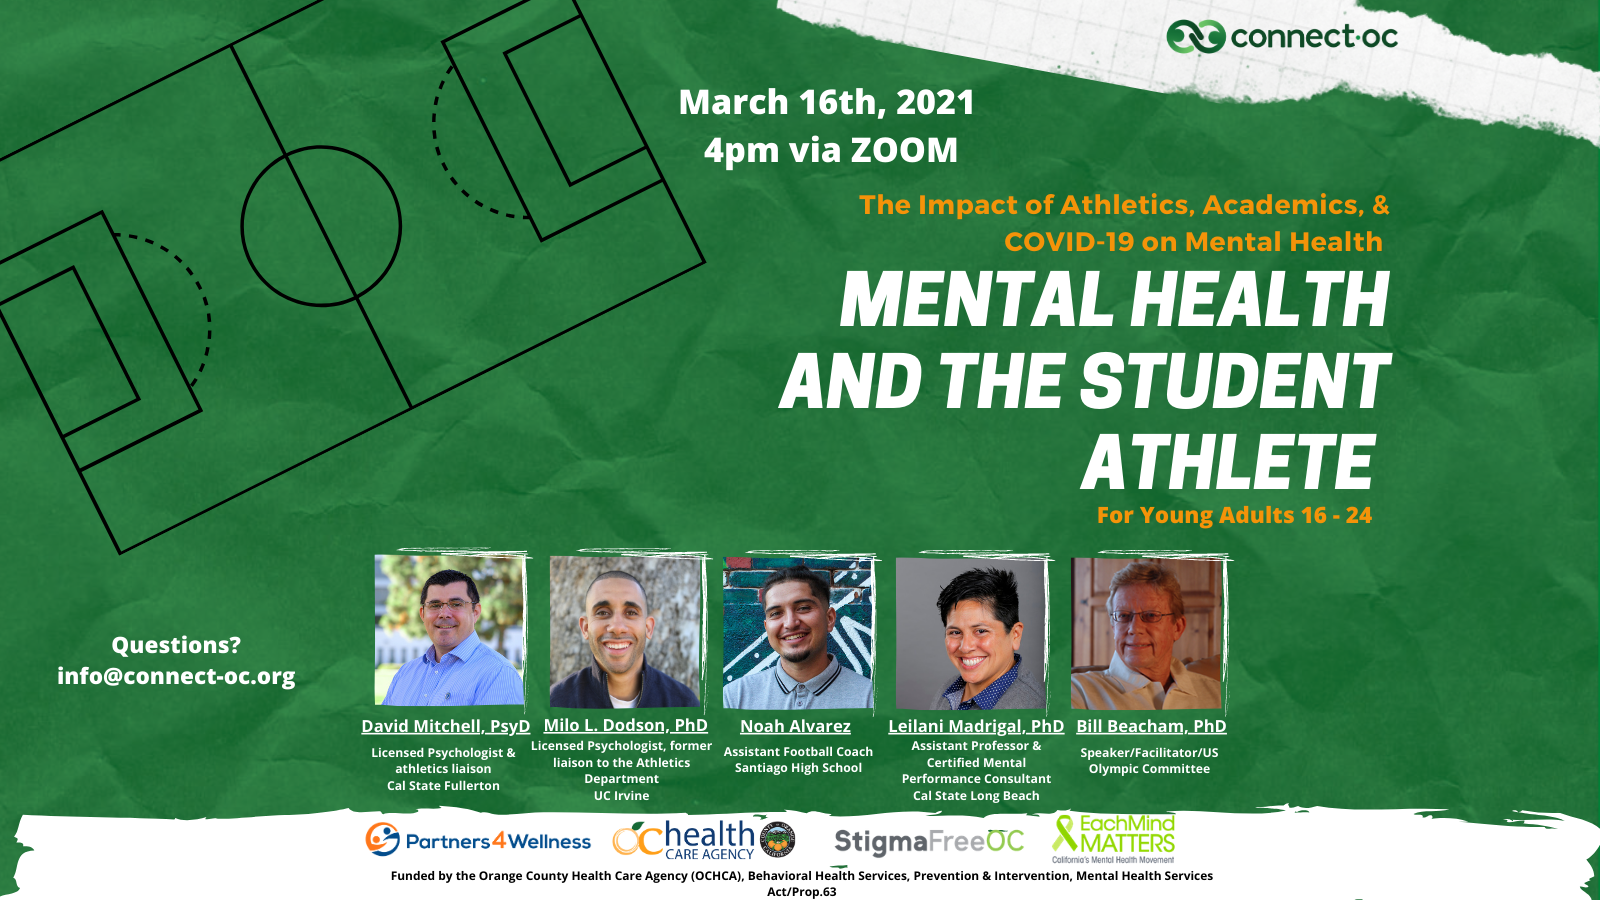 Mental Health and the Student Athlete Event